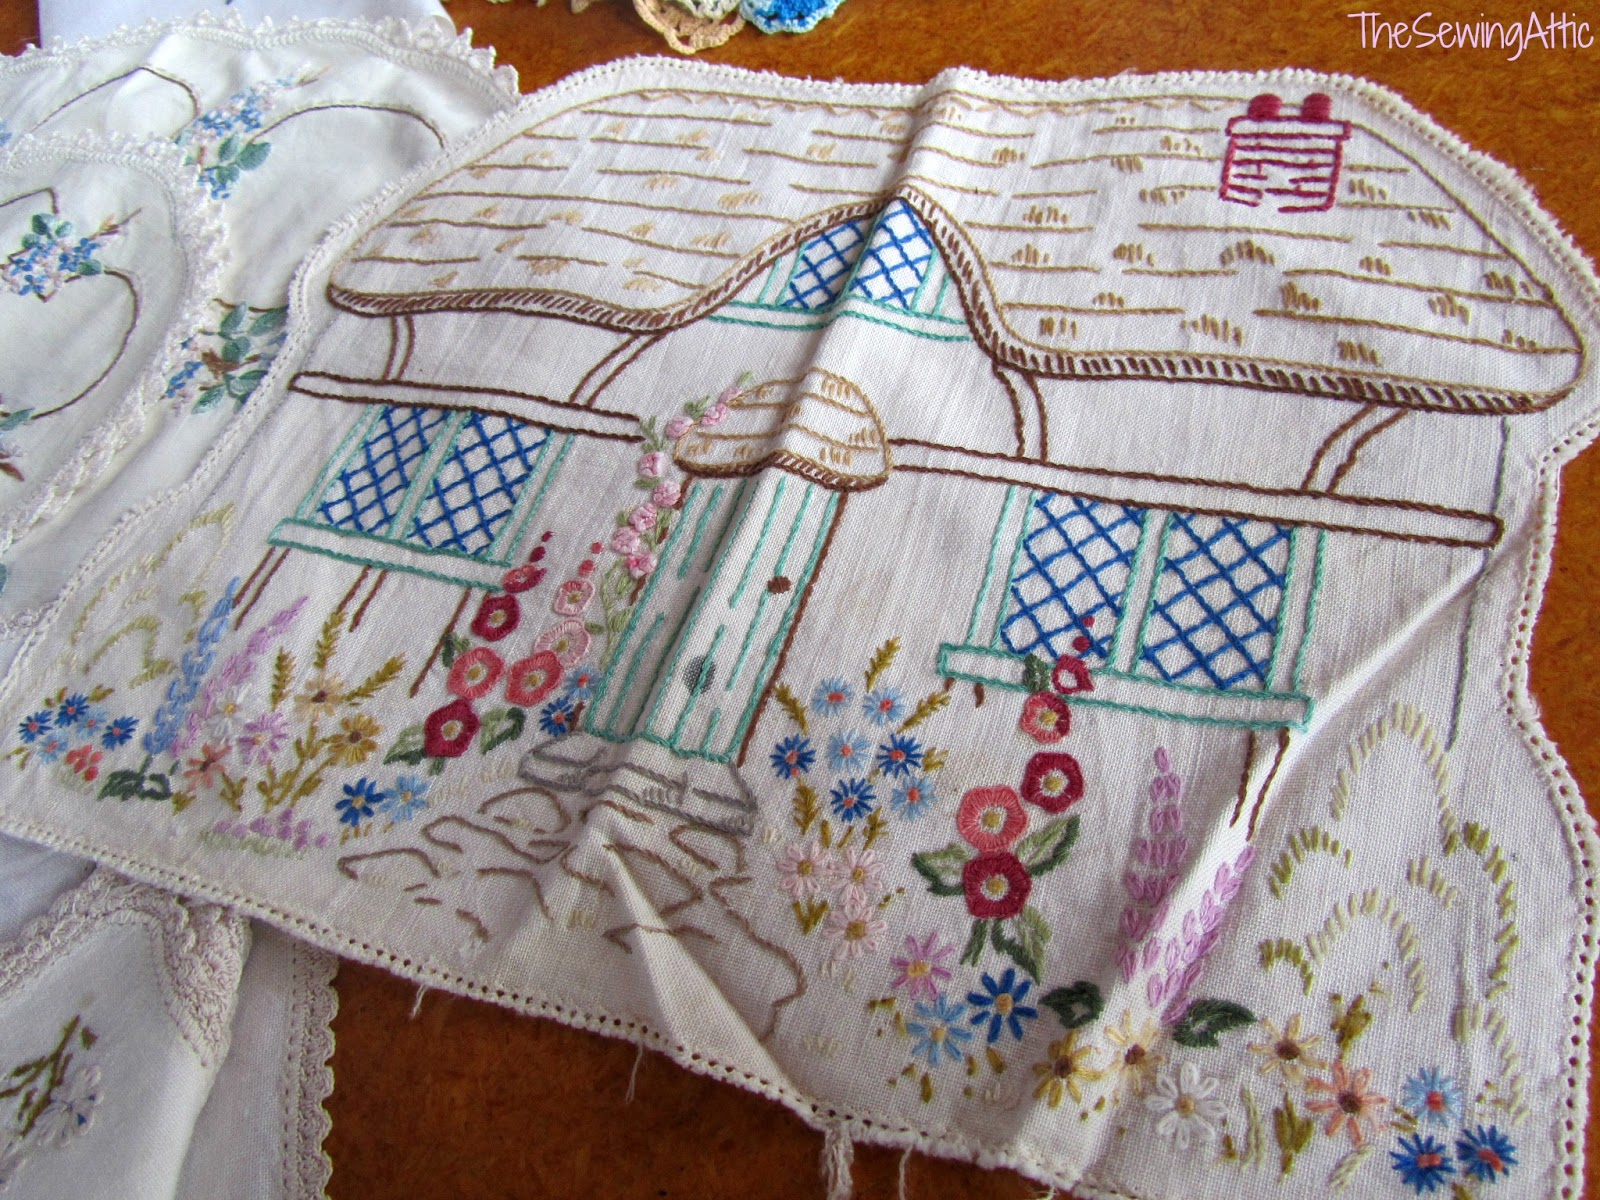 The Sewing Attic Vintage Embroidery Inheritance